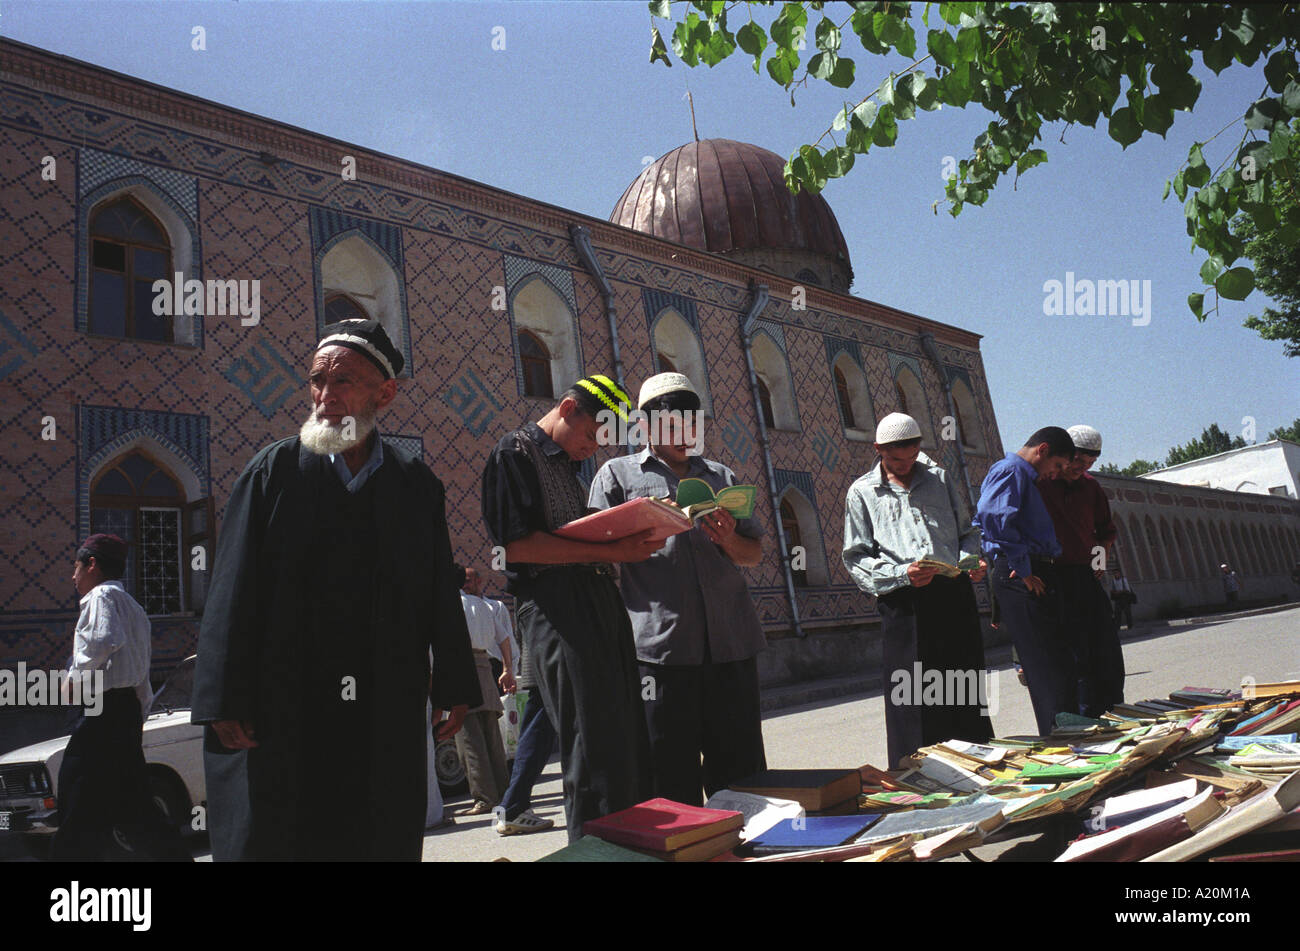 Men arriving for prayers at the Haji Yakoub mosque, Dushanbe stop to read, buy books of Islamic texts and teachings, Tajikistan - Stock Image